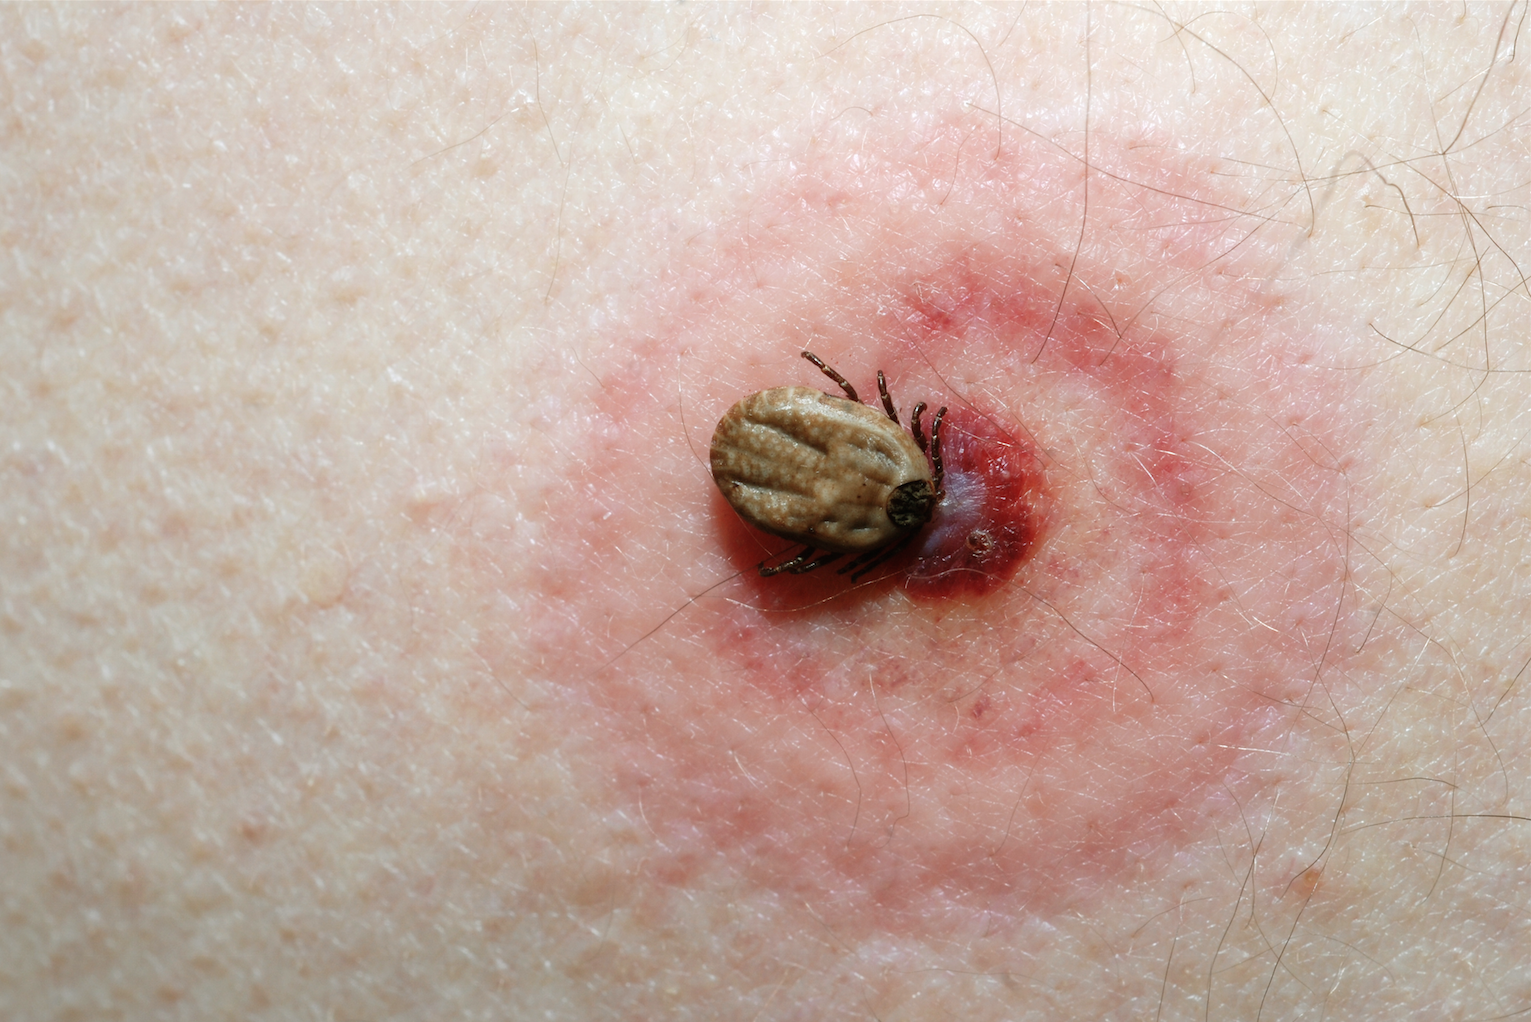 Remarkable Diagnosing And Treating Insect Bites And Stings On The Lower Uwap Interior Chair Design Uwaporg